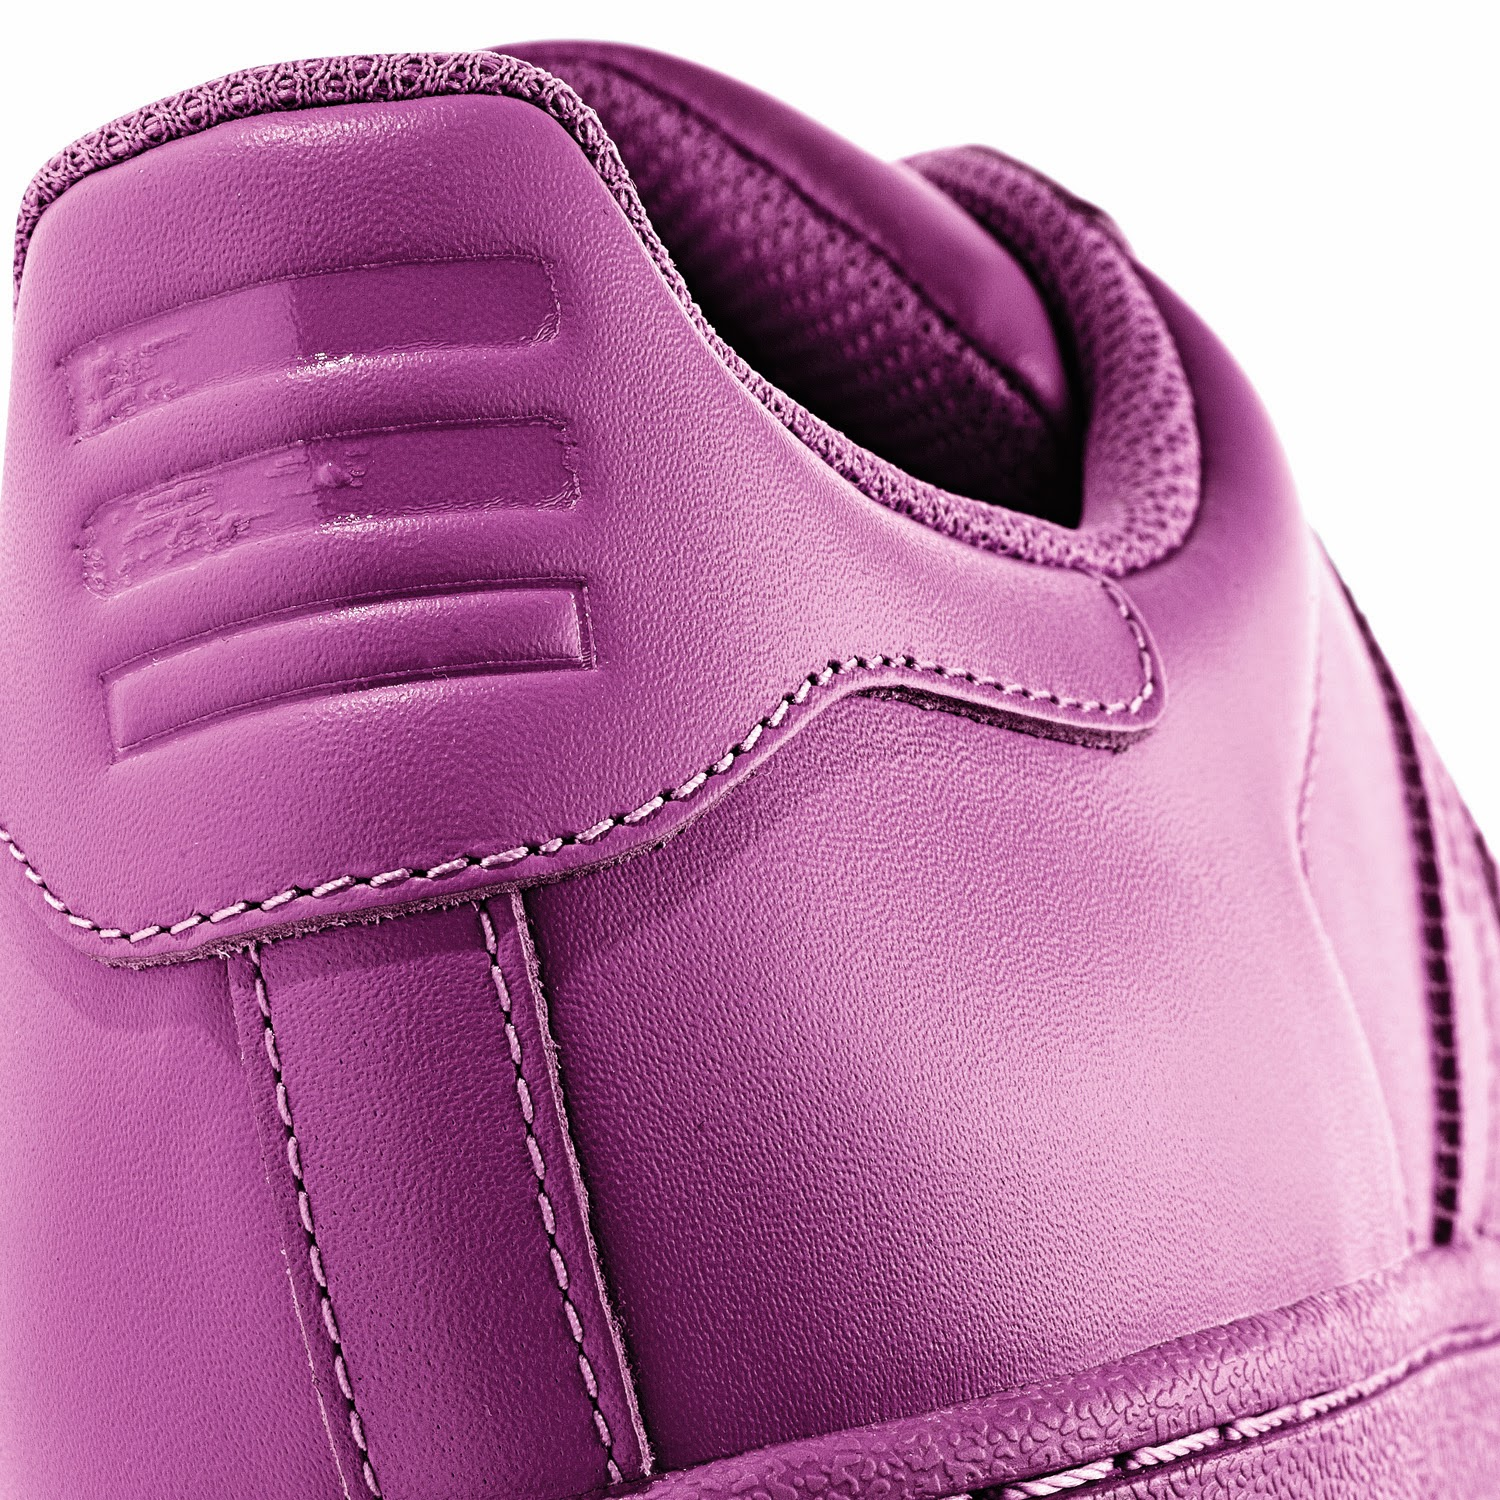 new product af1de 262a3 Adidas x Pharrell Williams  Supercolor SS 15 - ARTSY FARTSY AVA